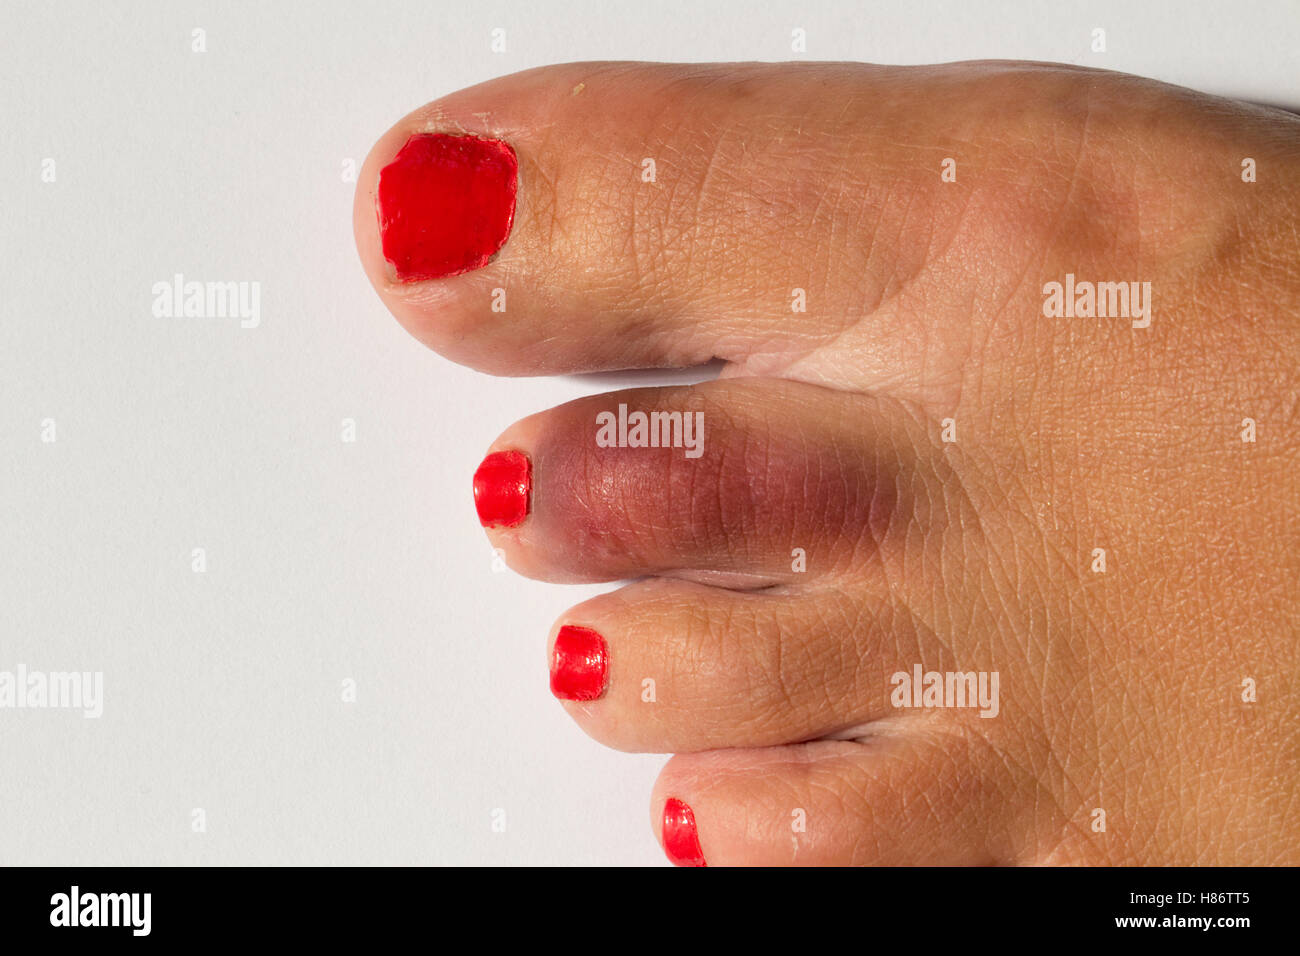 A woman's foot with a broken toe showing bruised area on second toe - Stock Image